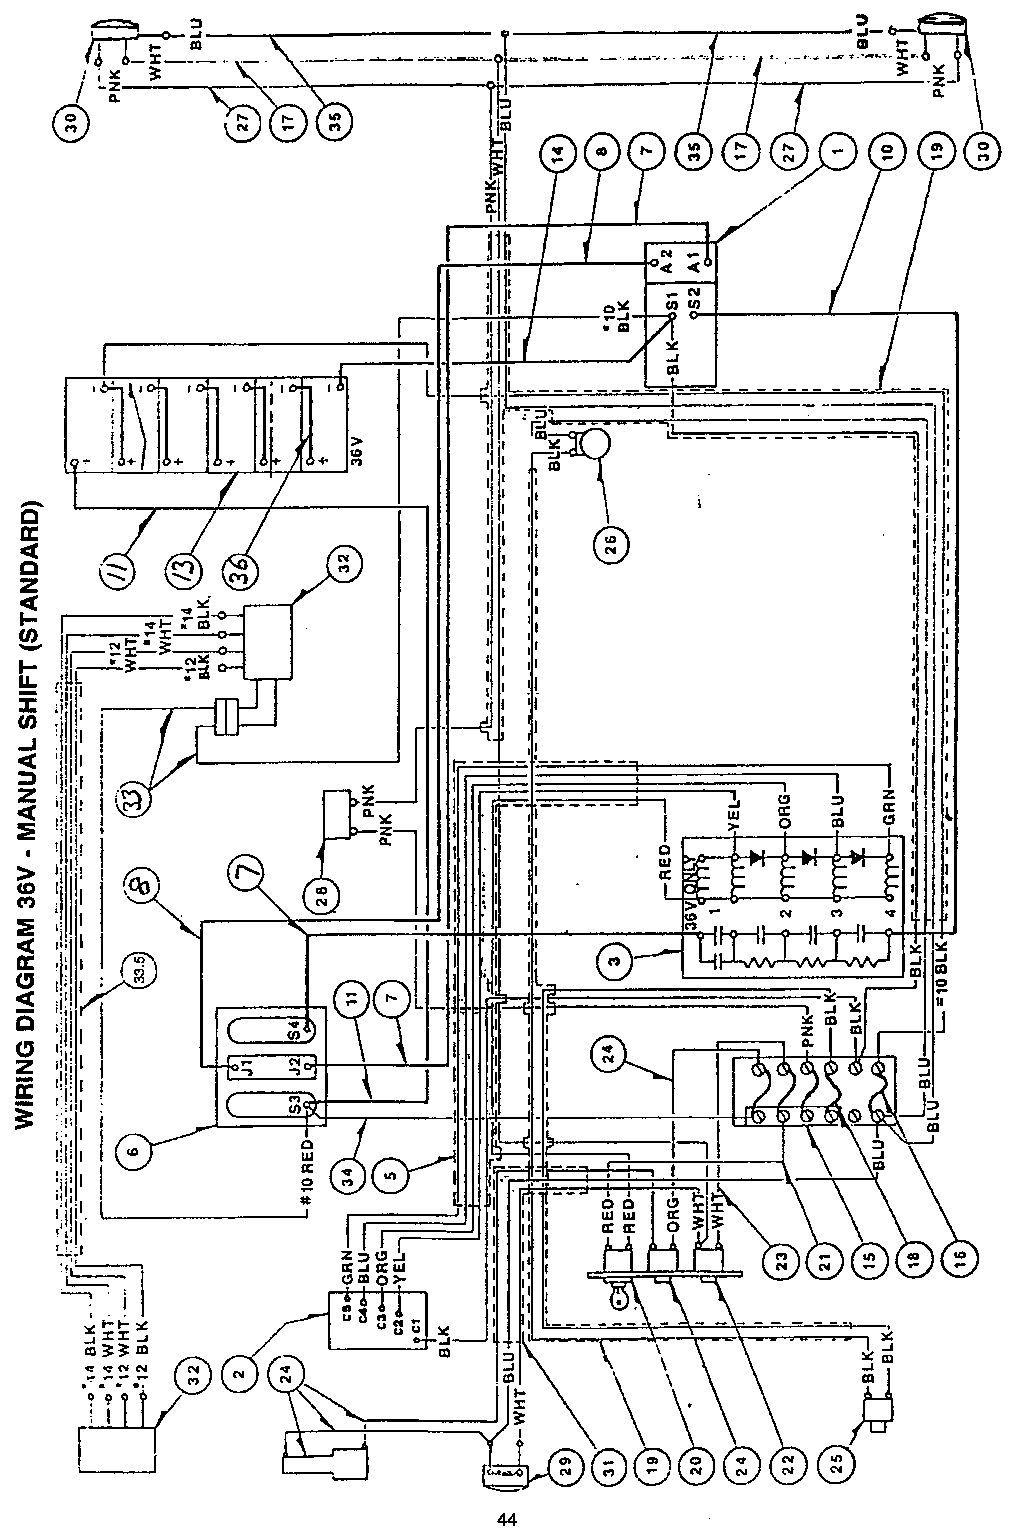 wiring diagram ez go workhorse mc400e best site wiring 2001 EZ Go TXT Wiring-Diagram EZ Go Electric Golf Cart Wiring Diagram